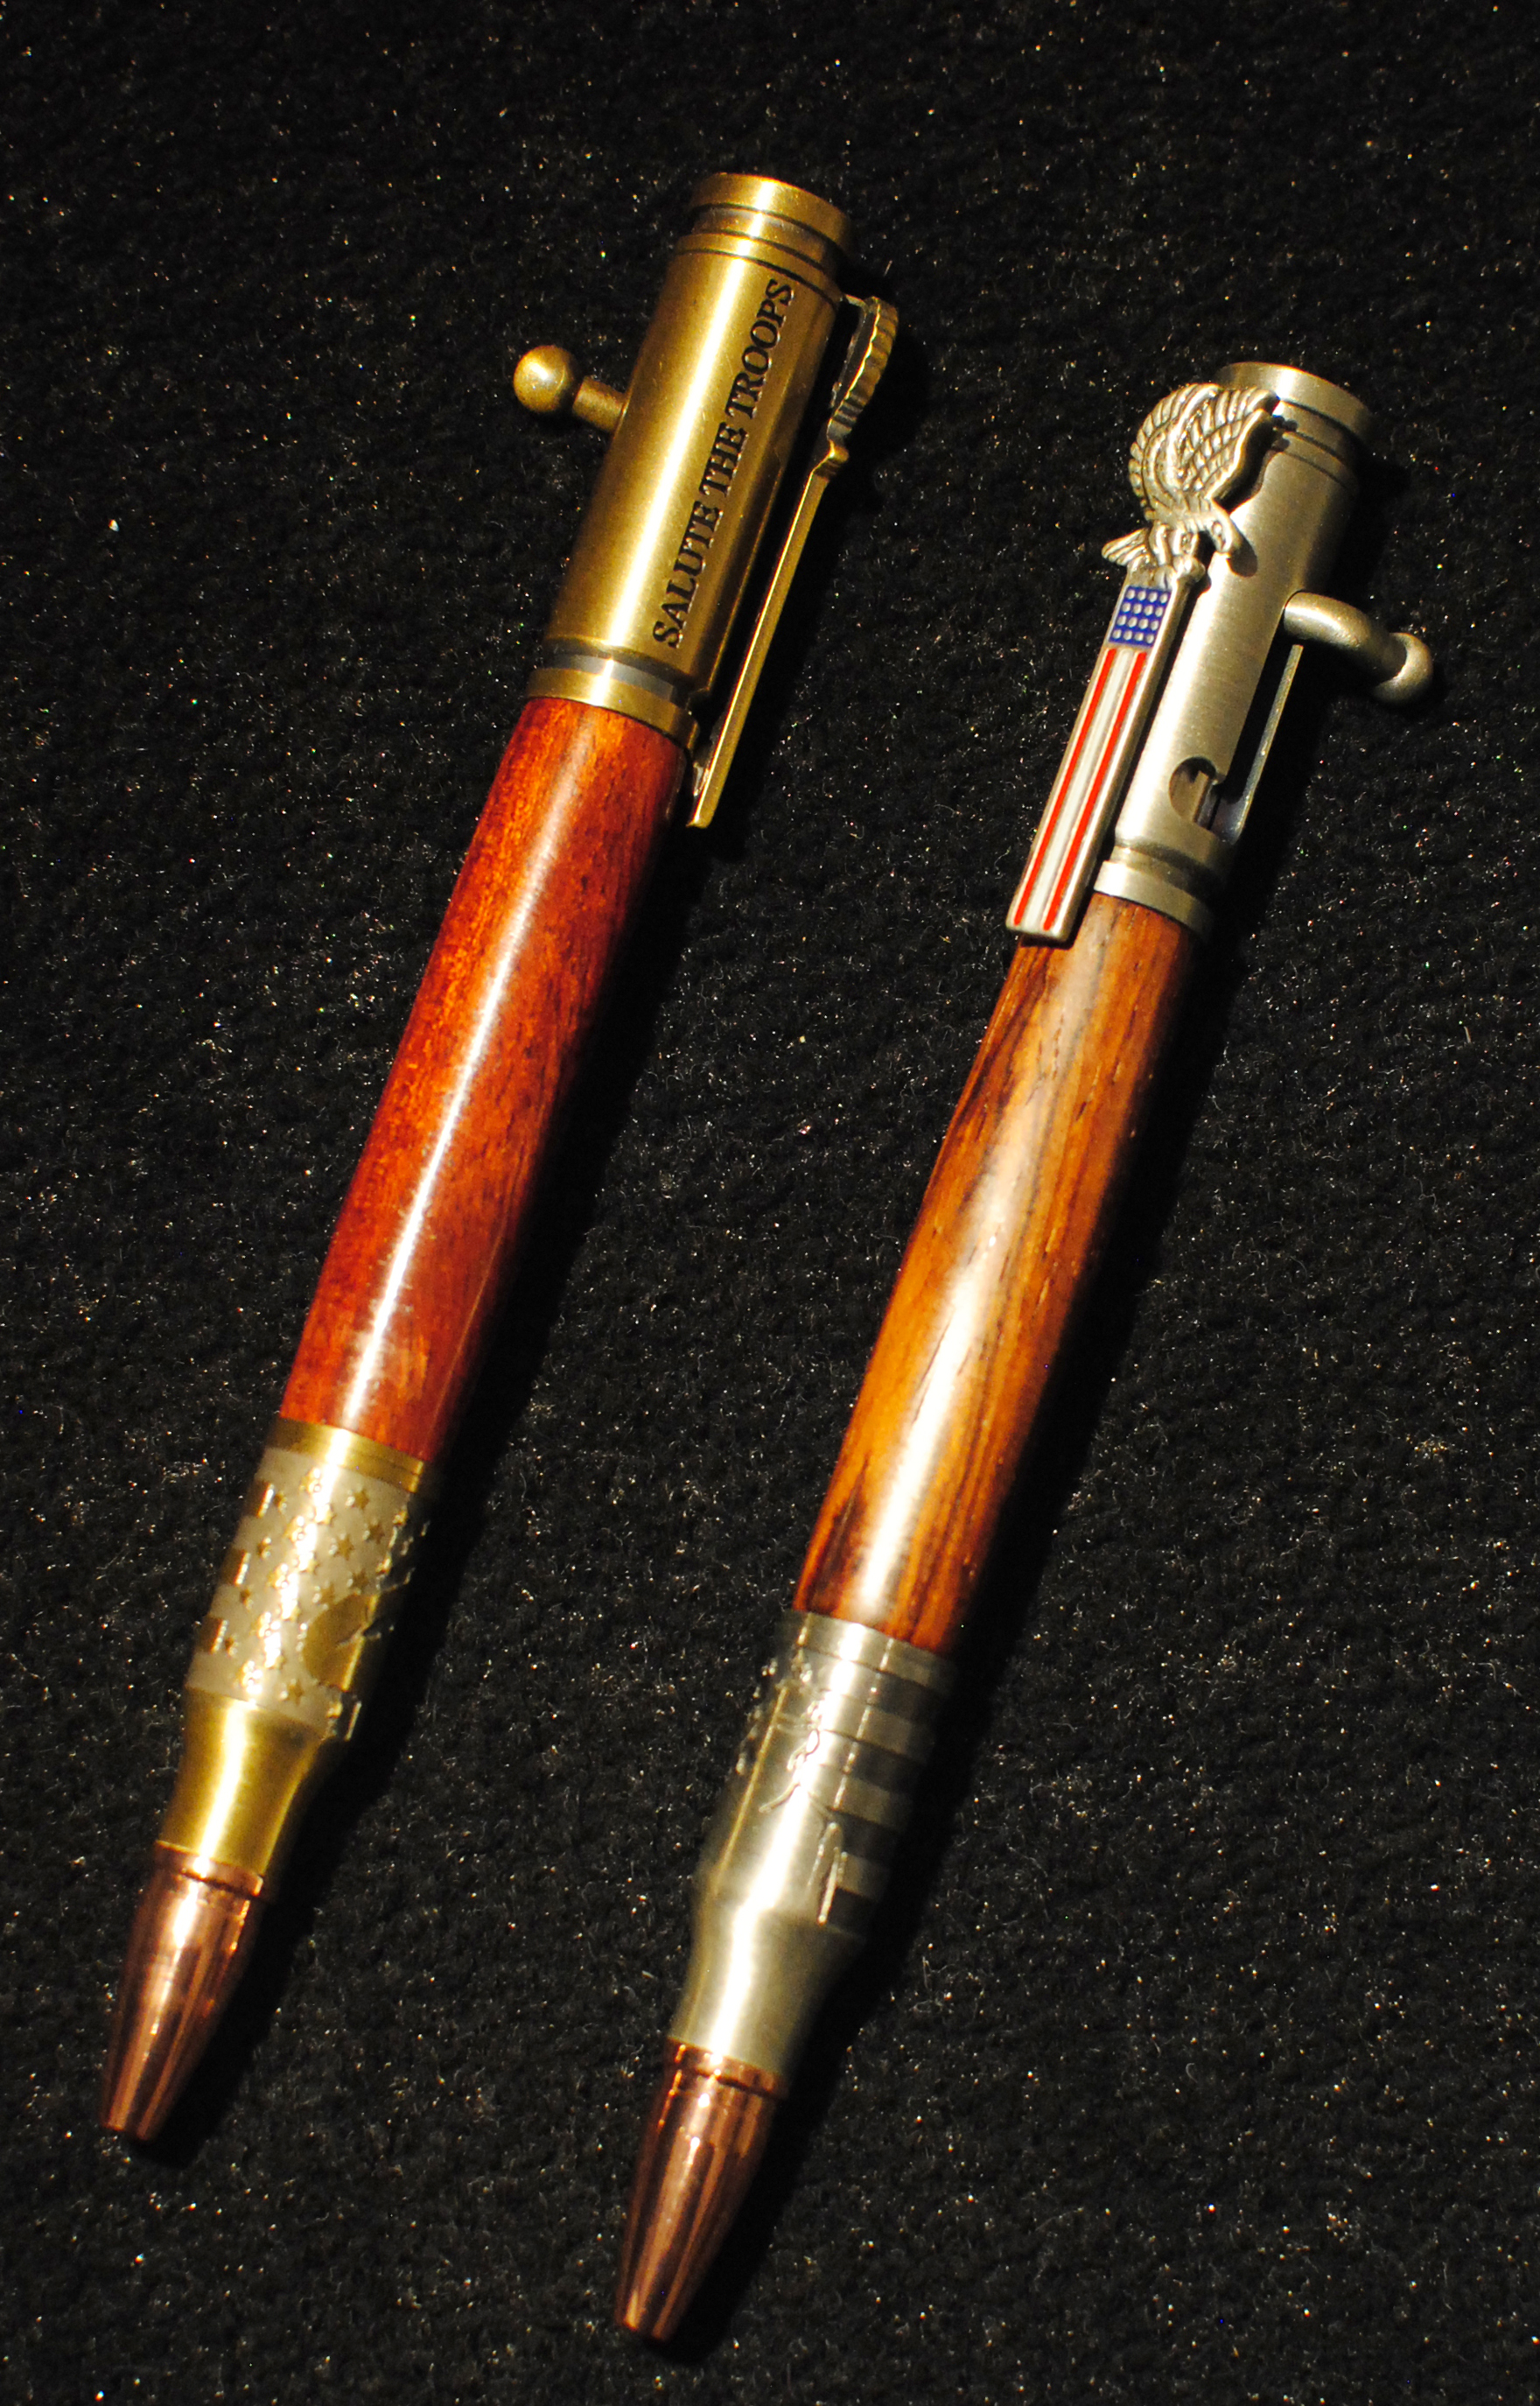 Allywood Creations Salute the Troops Pen - Wood